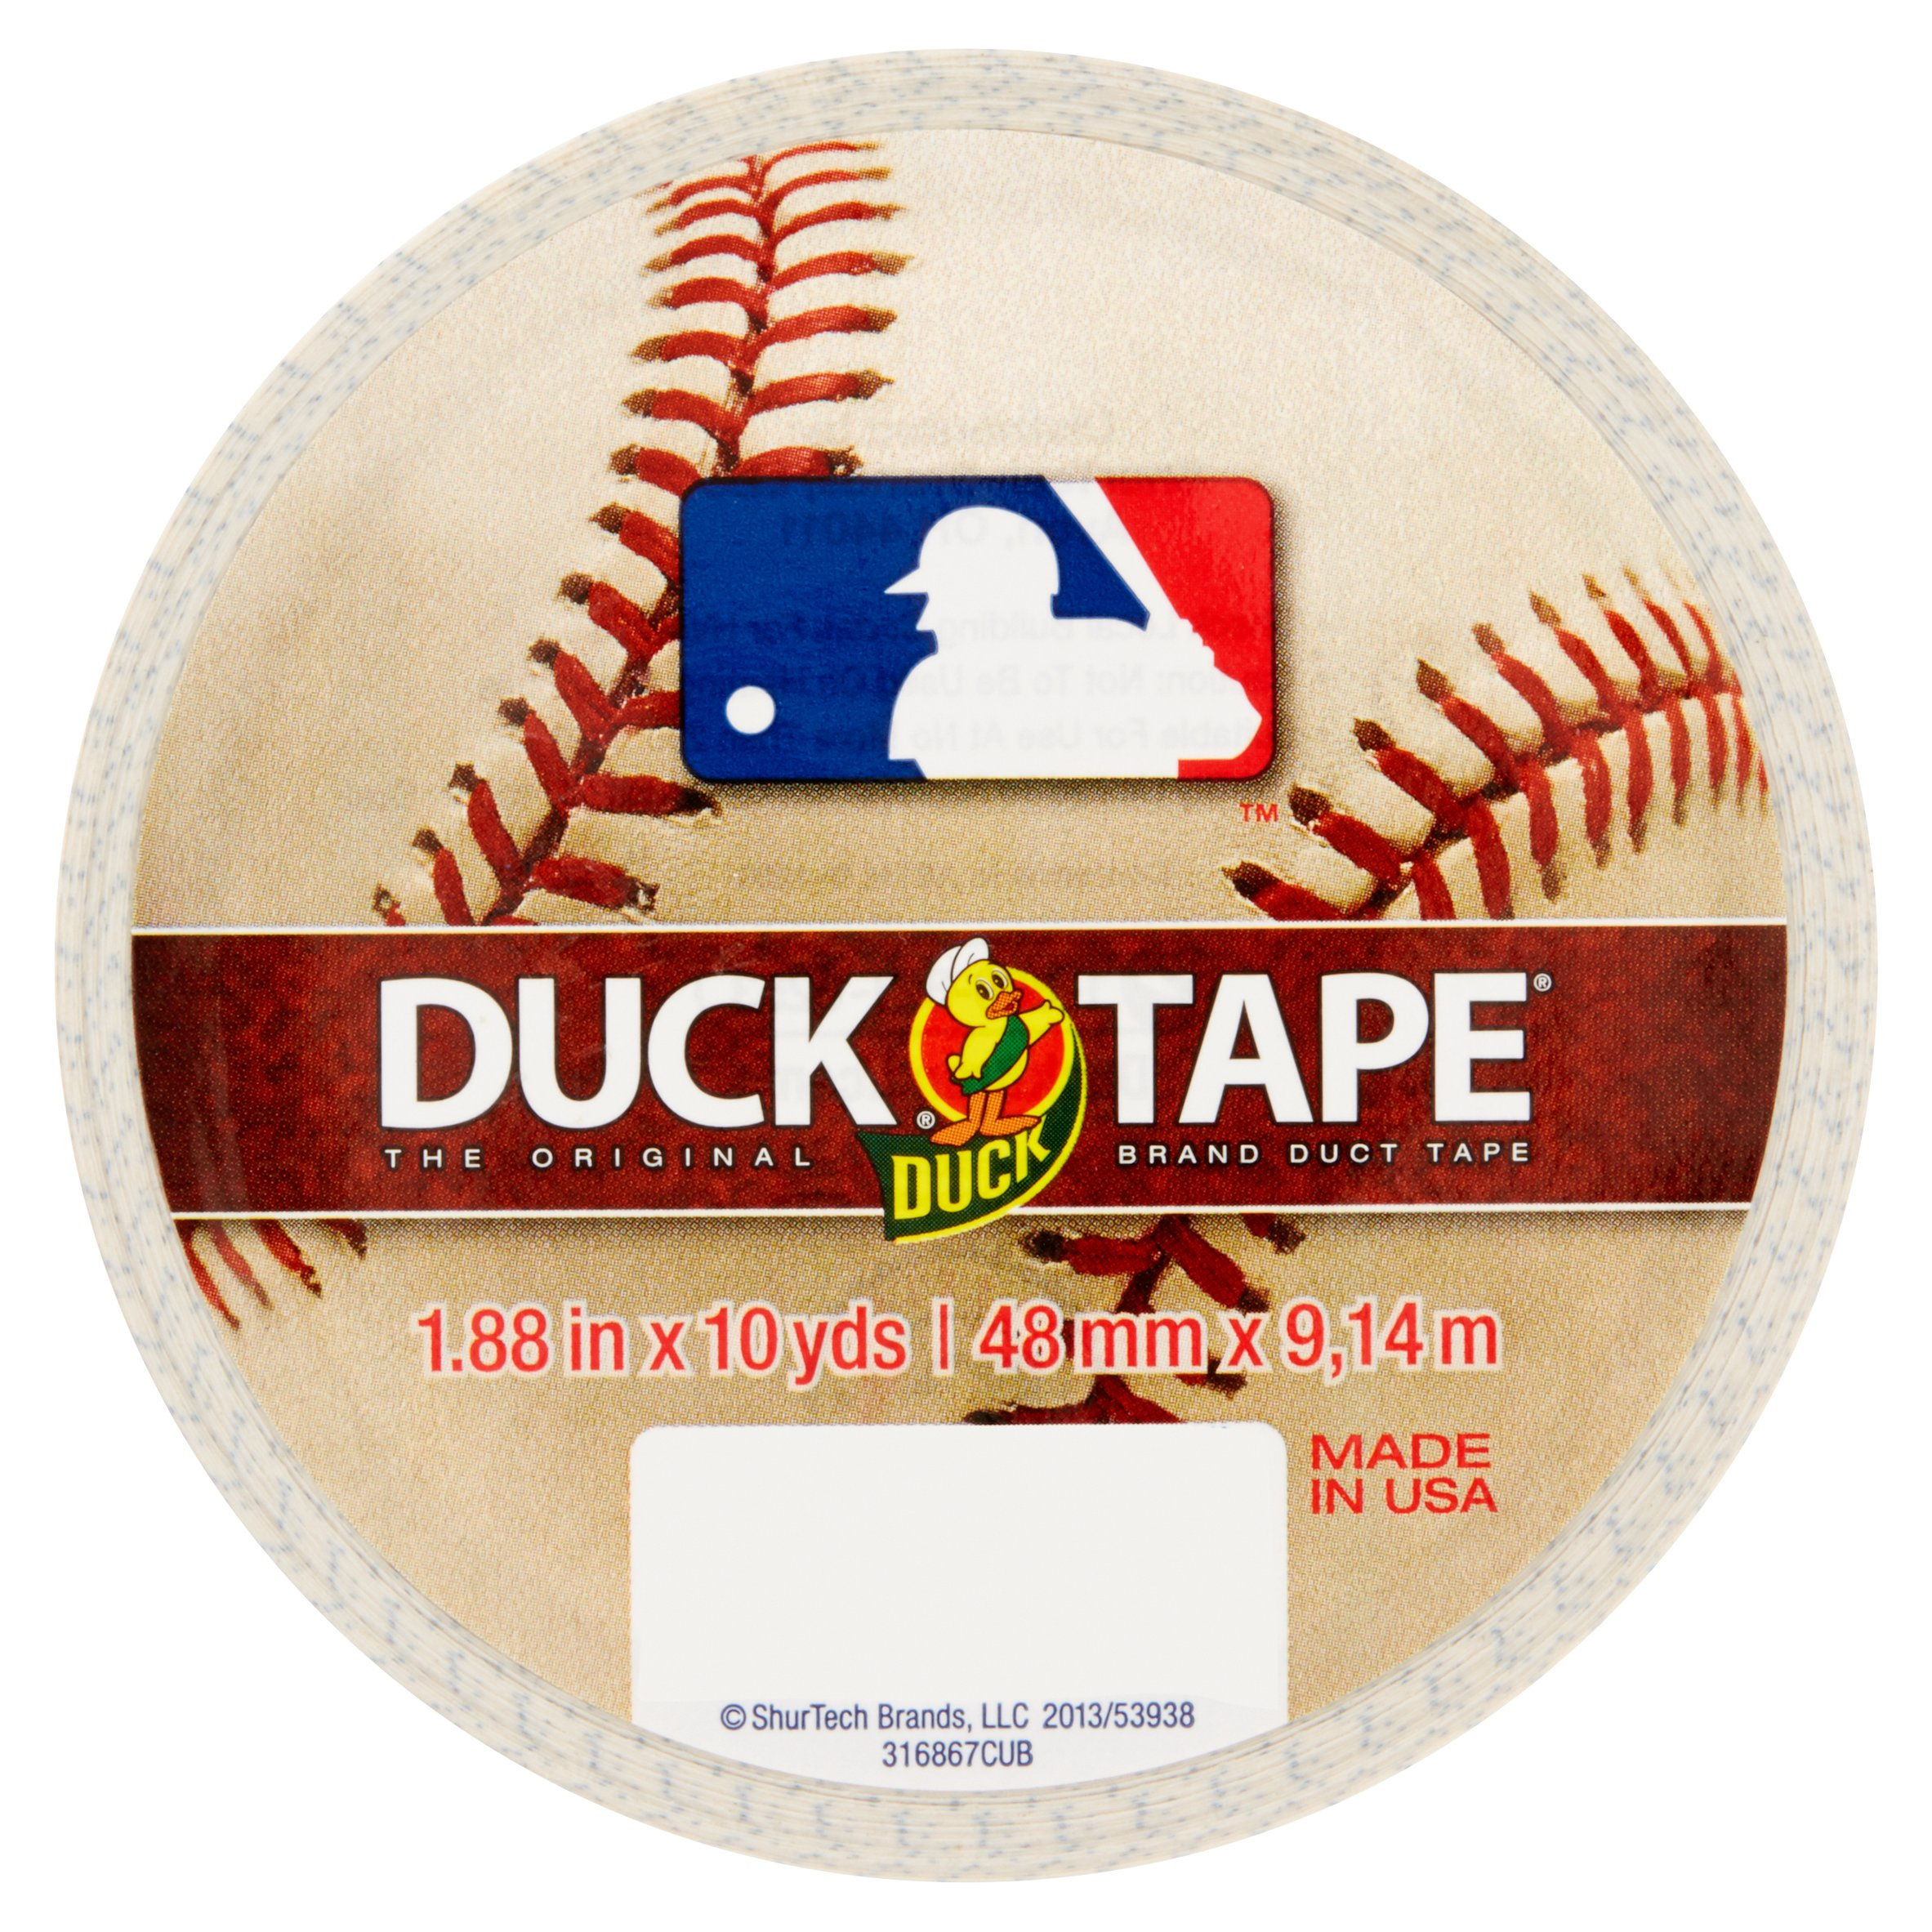 "Duck Brand Duct Tape, MLB Duck Tape, 1.88"" x 10 yard, Chicago Cubs"